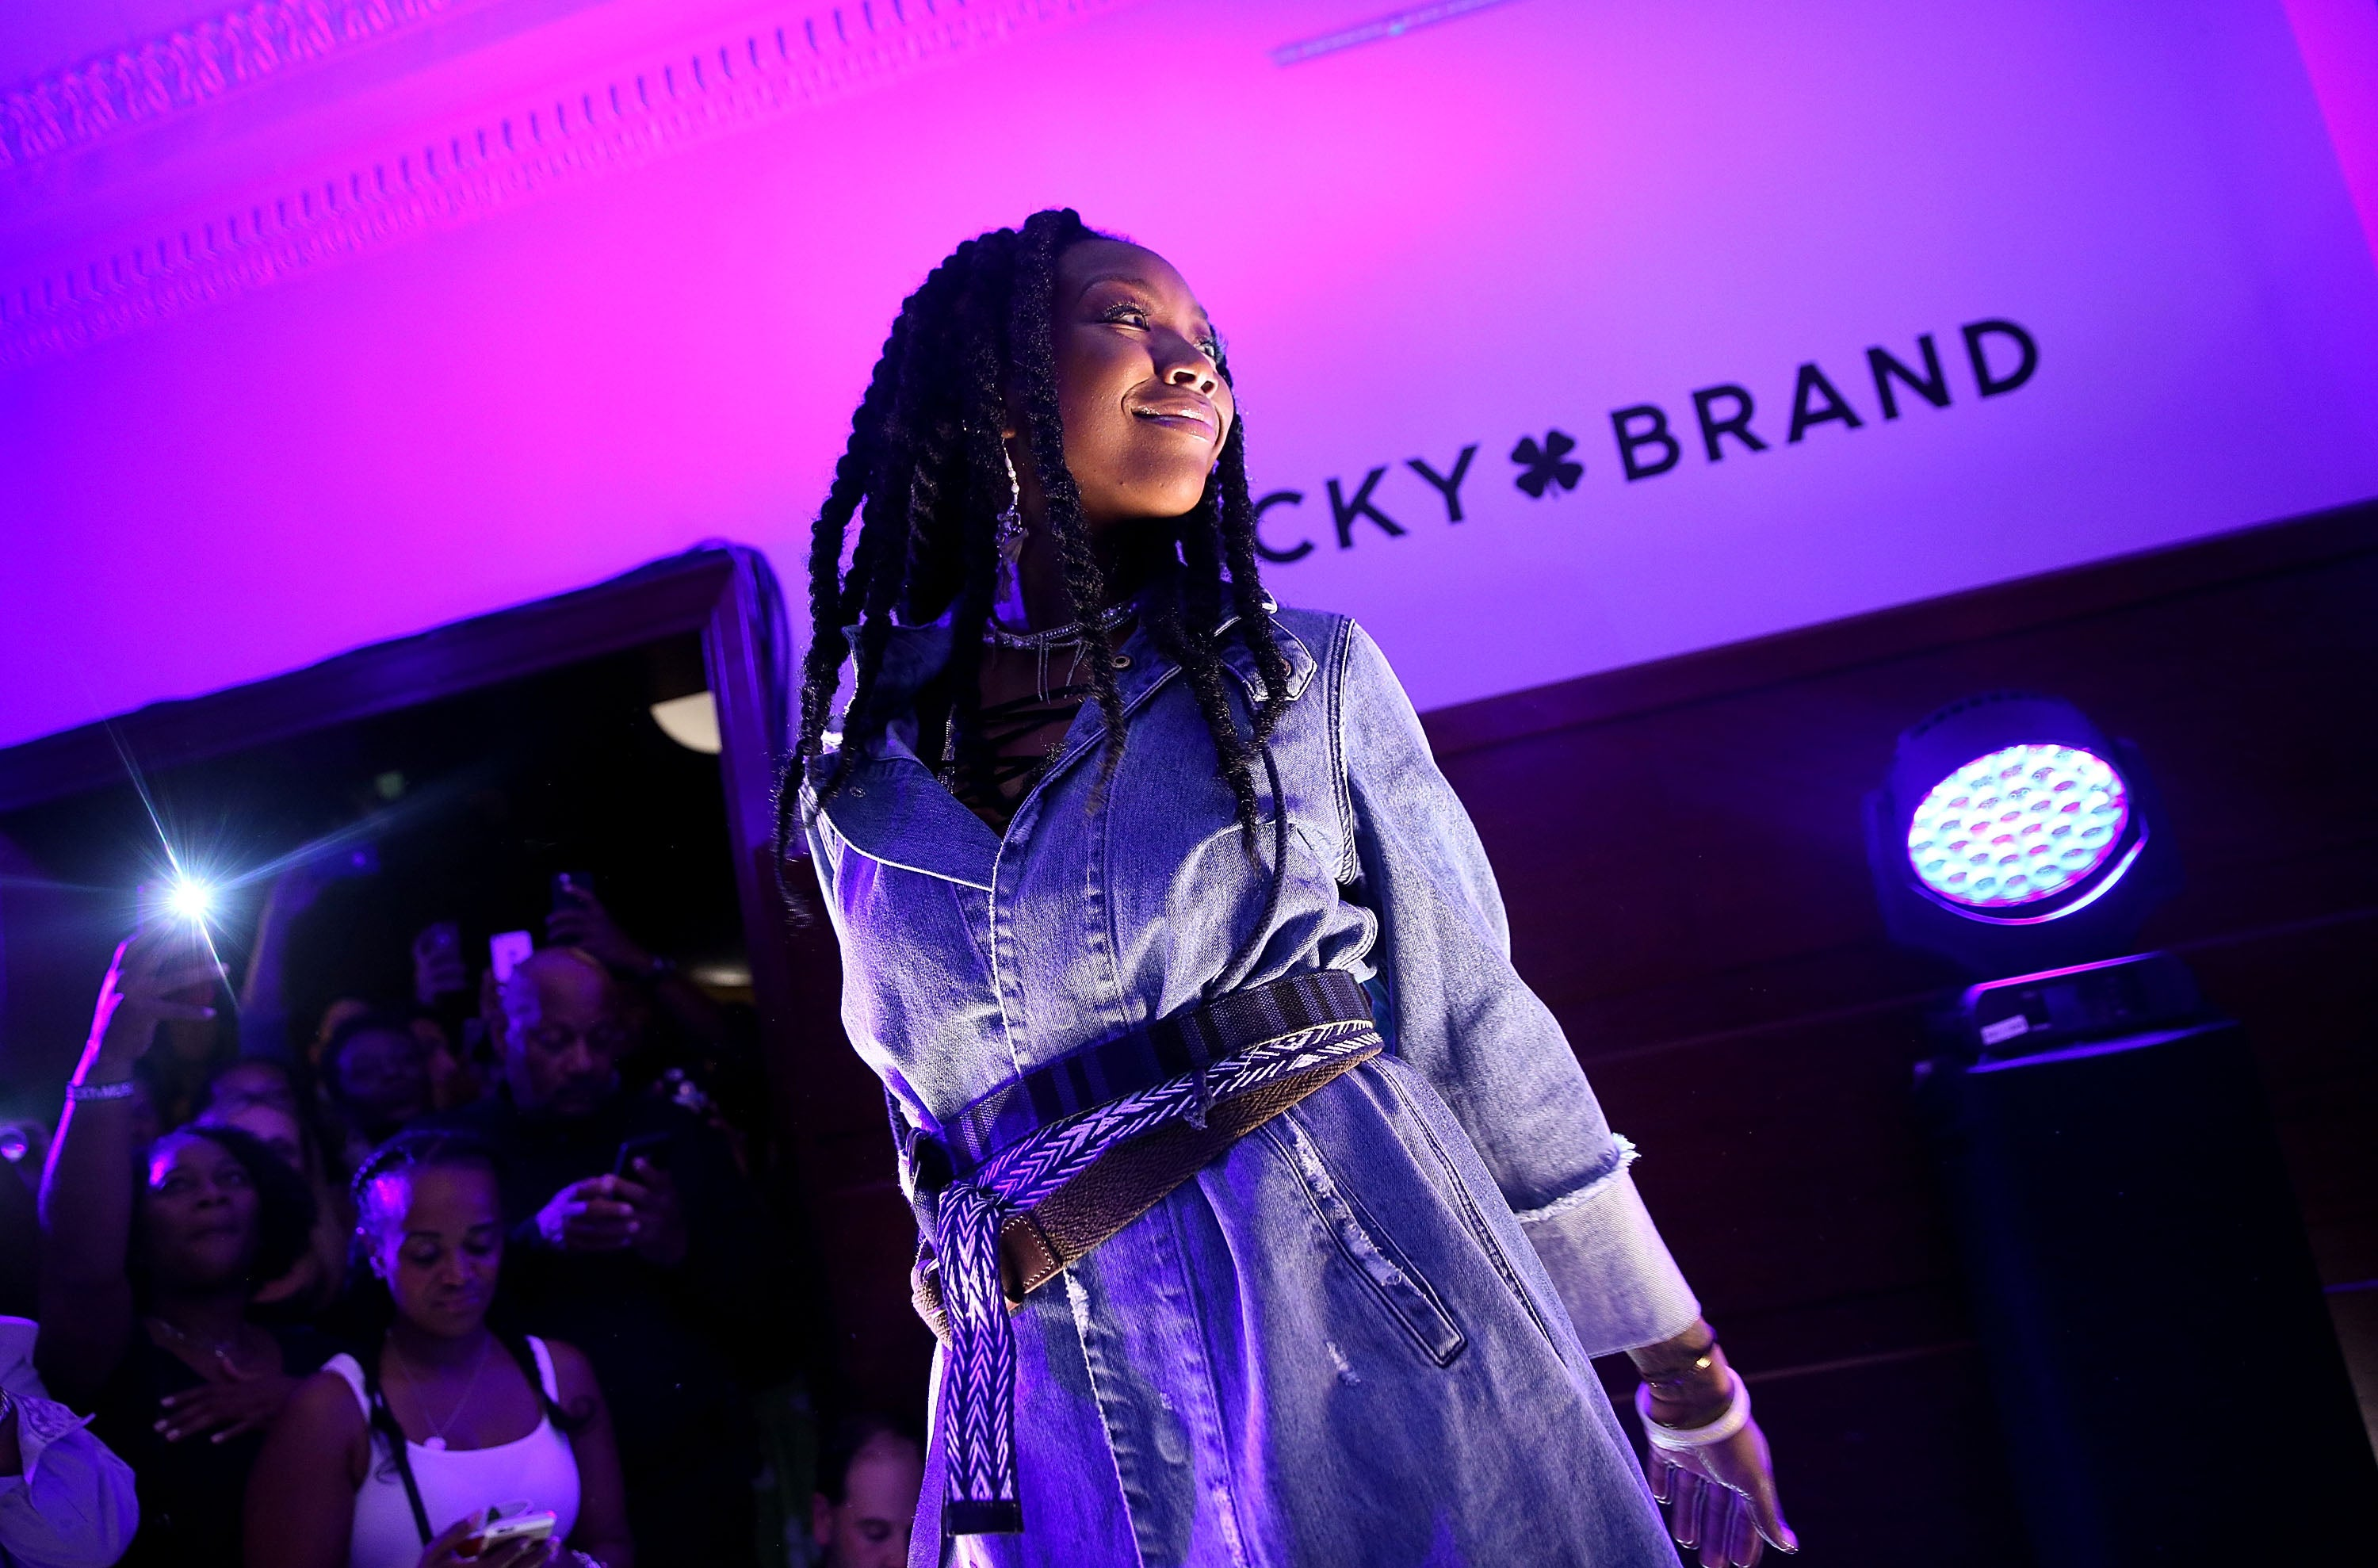 Brandy Reflects On Her Iconic Braids and Getting Over the 'Fake' Social Media Phase